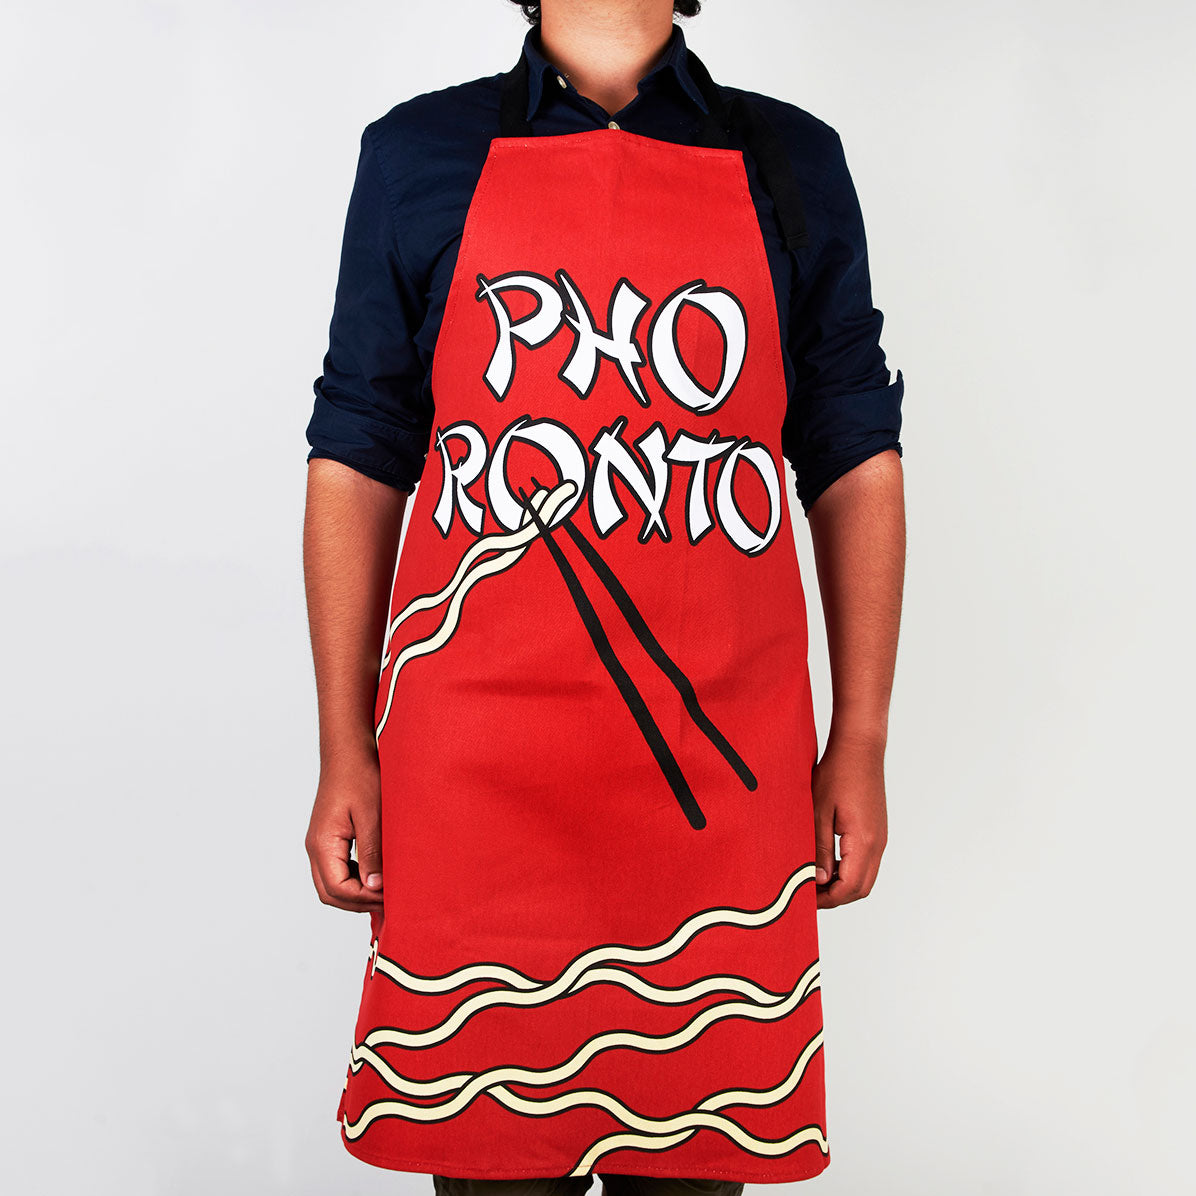 Phoronto Apron - Main and Local